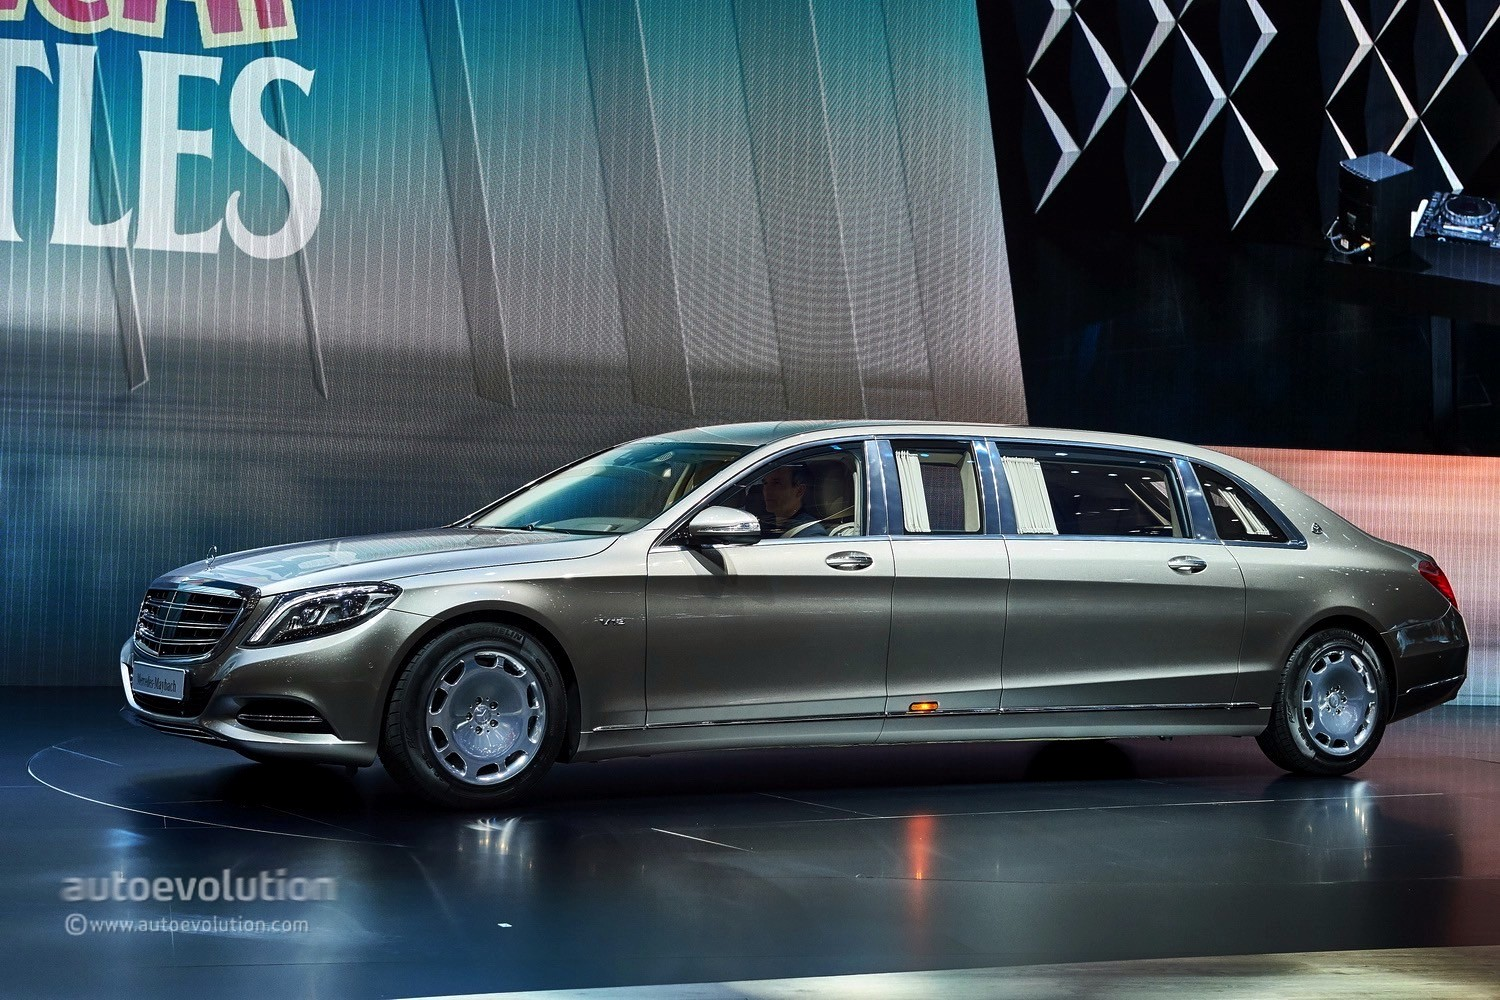 Mercedes Maybach S600 Wallpapers HD Download 1500x1000